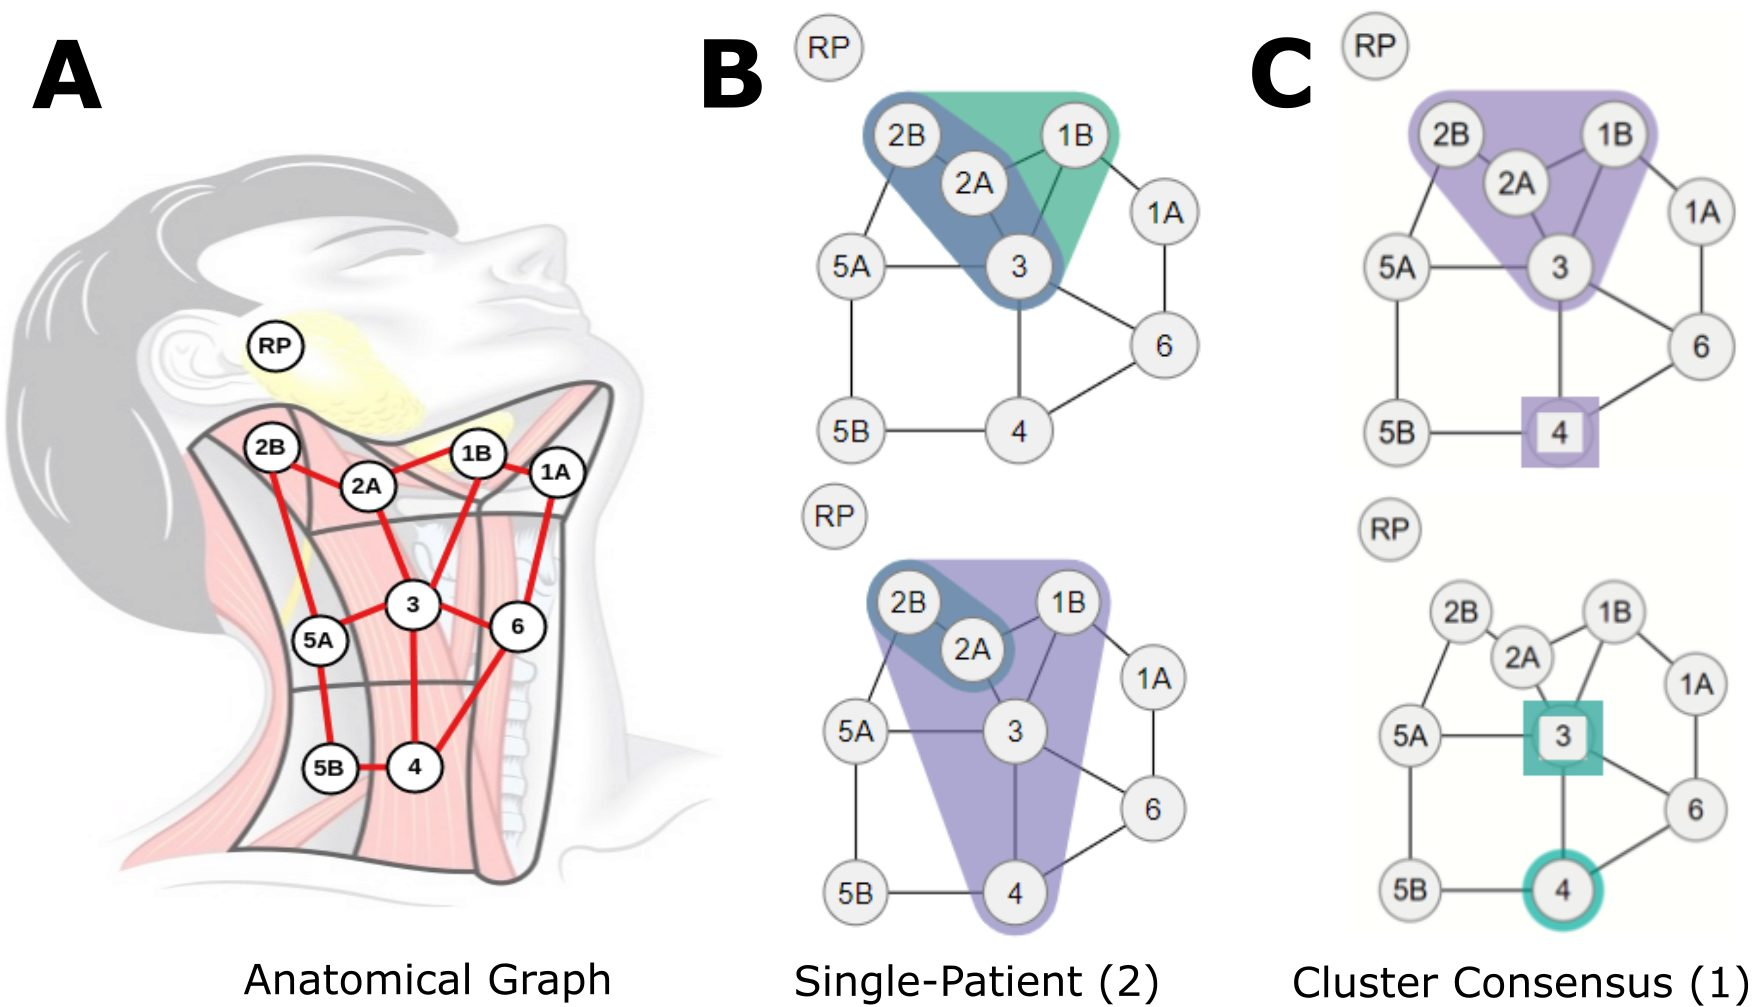 (A) Lymph nodes overlaid over a diagram of the neck. (B) Example graphs of diseased nodes for 2 individual patients (datapoint representation). (C) Example consensus graph for 1 cluster (cluster representation).